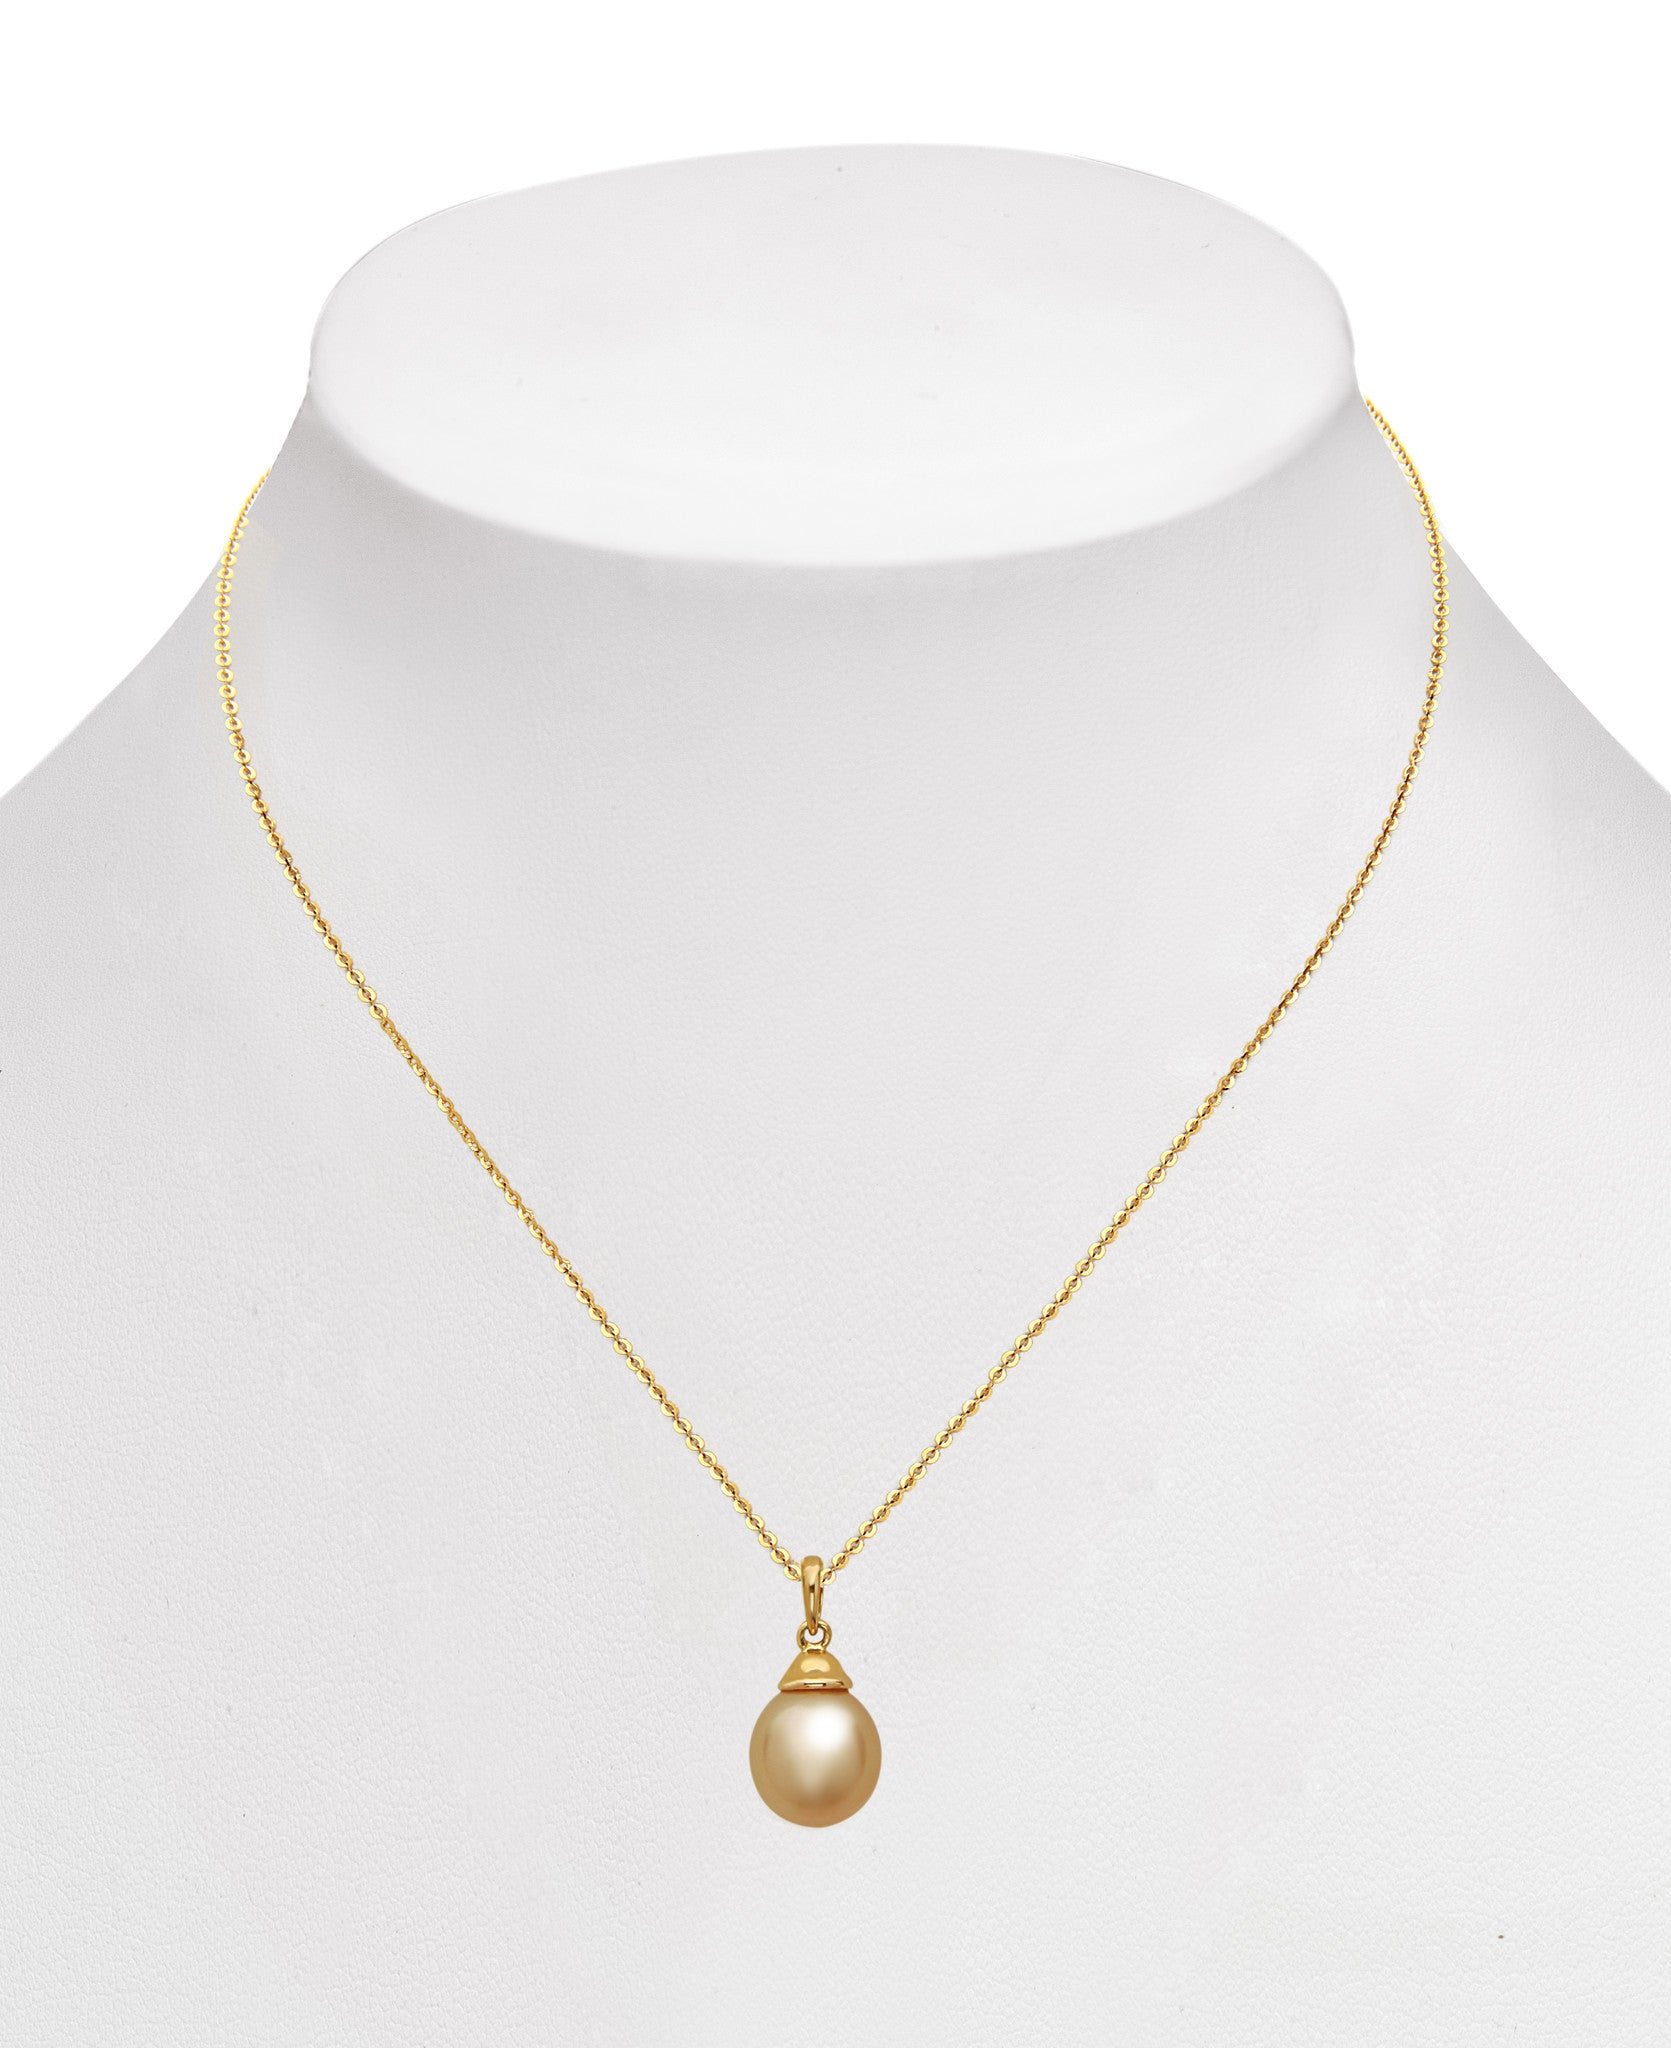 9-10mm Golden South Sea Pearl Pendant